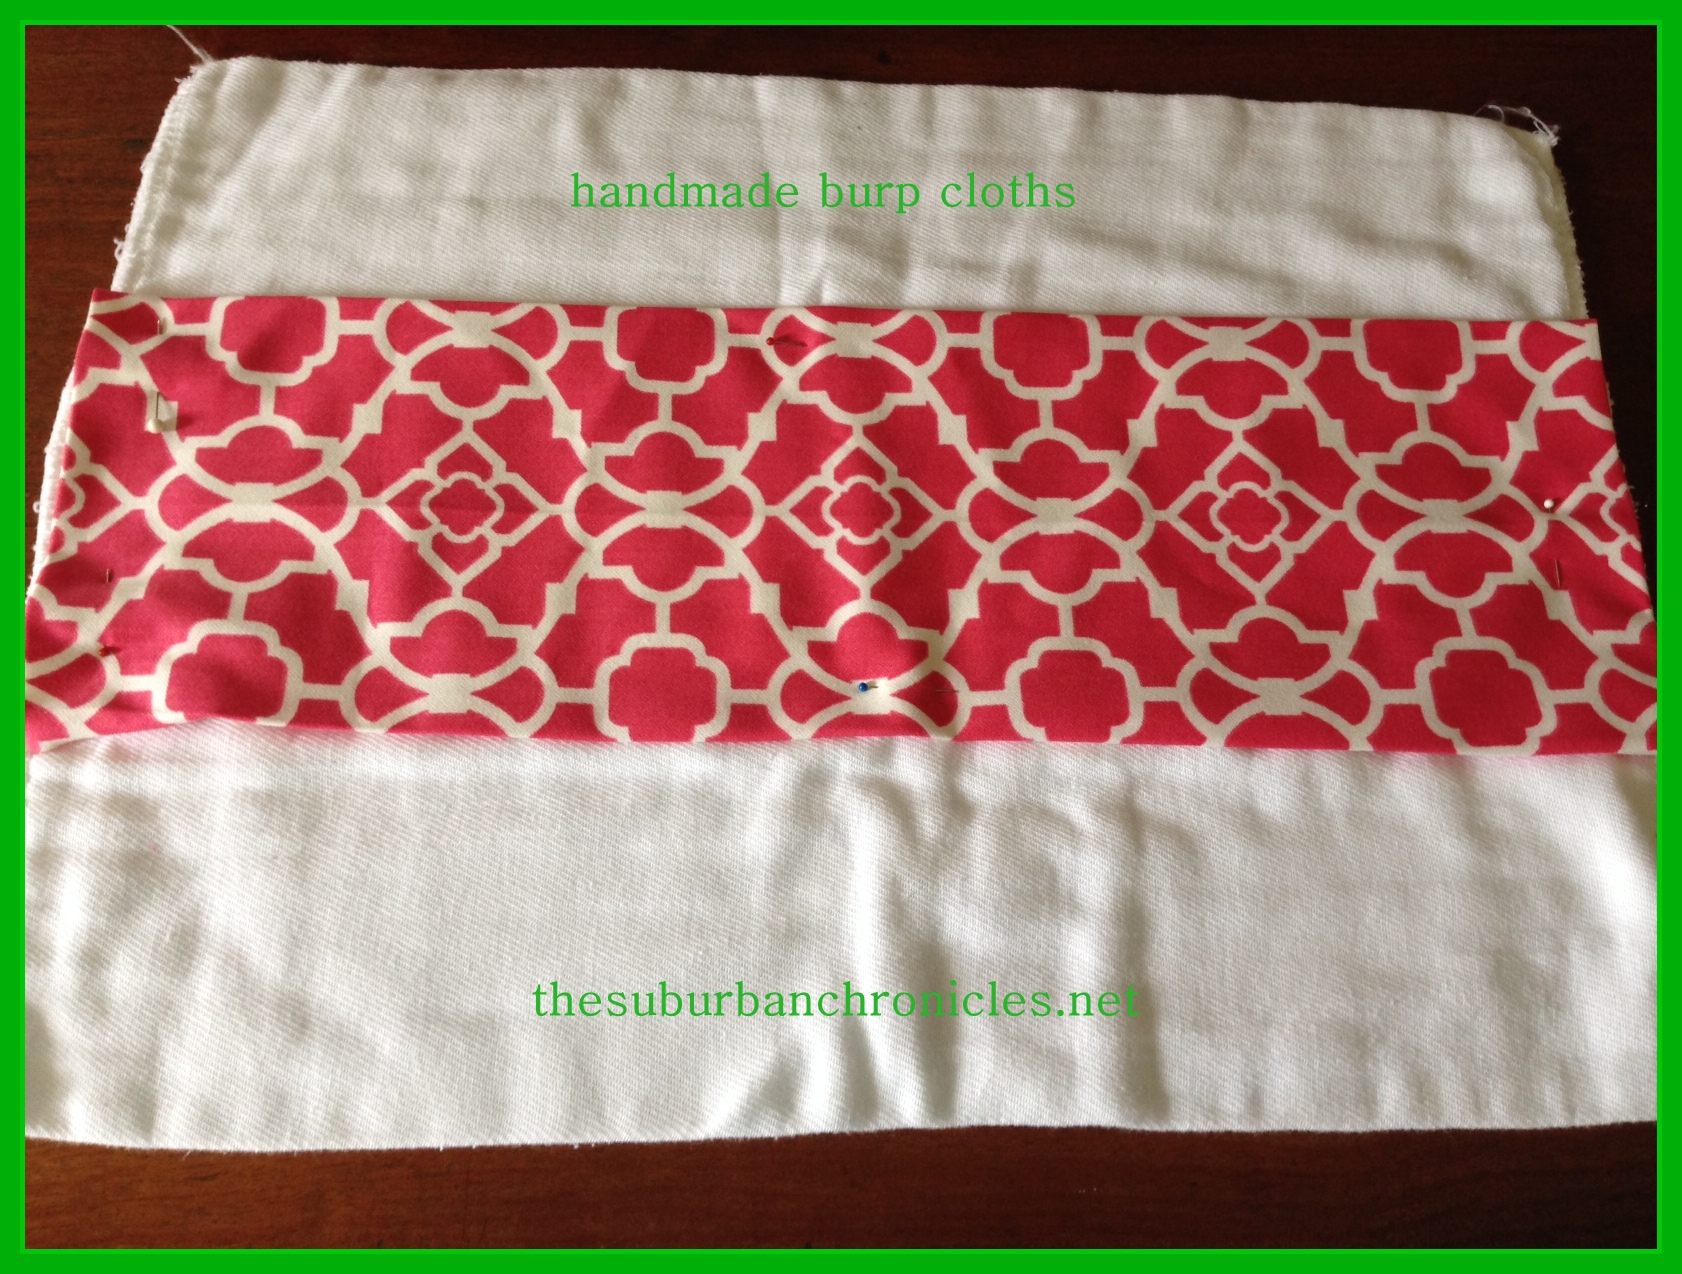 Diy Sew A Burp Cloth In 30 Minutes Or Less The